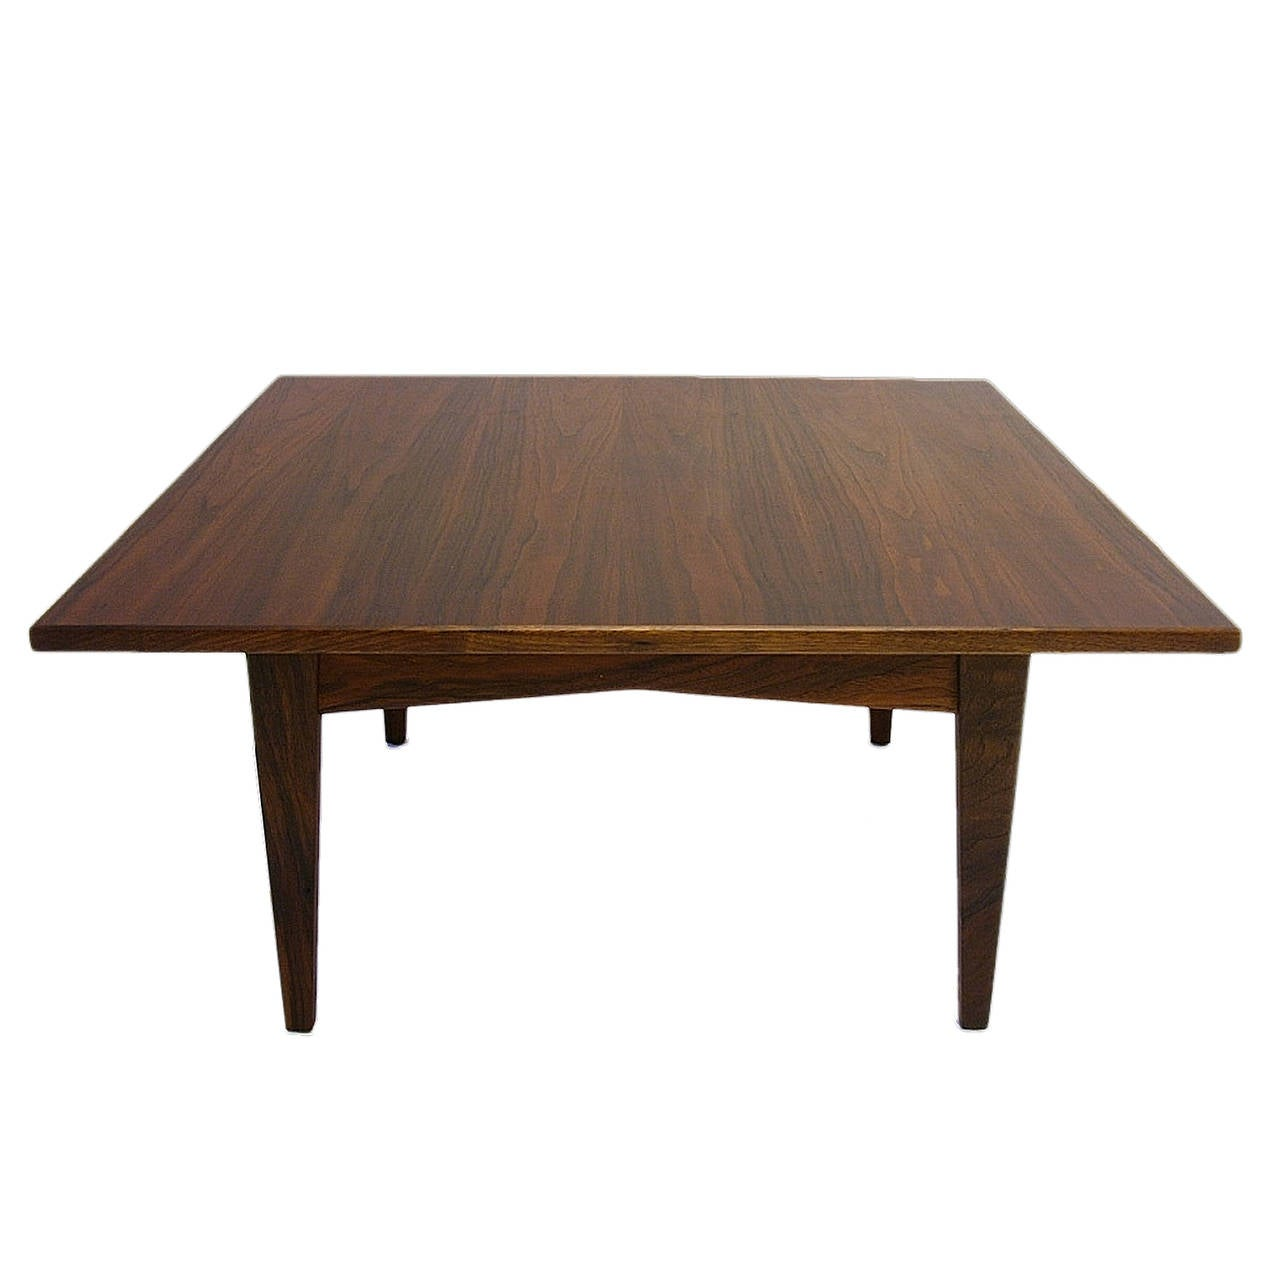 Jens Risom Floating Coffee Table For Sale At 1stdibs